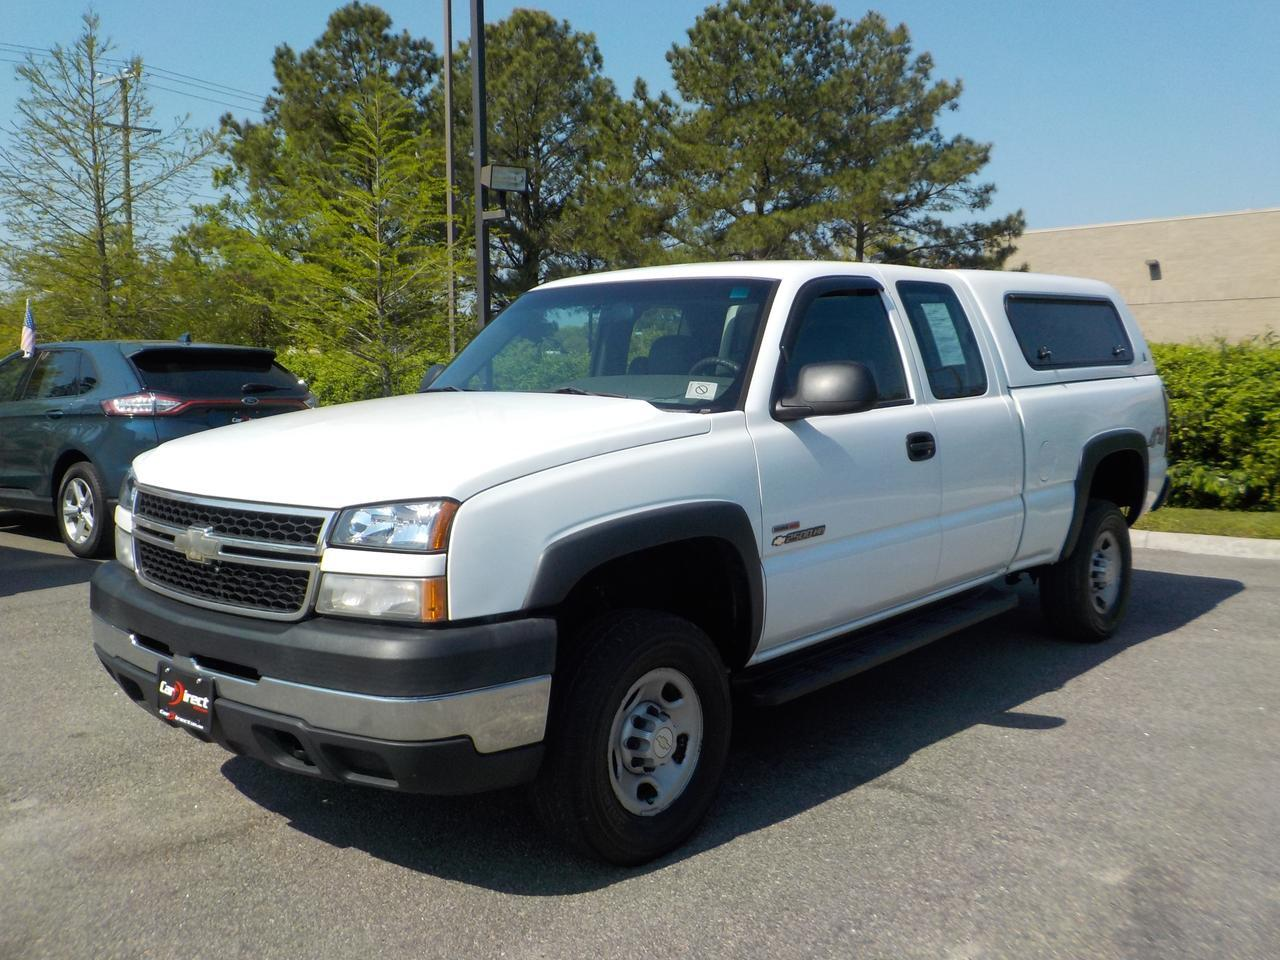 2006 CHEVROLET SILVERADO 2500 HD EXTENDED CAB LONGBED 4X4, LEATHER, POWER SEATS, BACKUP CAMERA, BEDLINER, TOW PACKAGE!